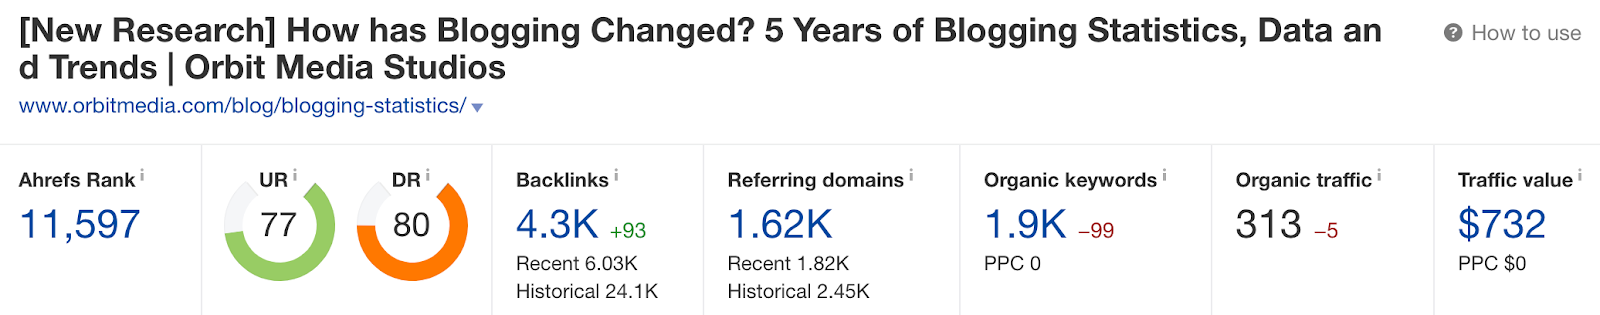 """Screenshot blog result of """"How has blogging changed? 5 years of blogging statistics, data and trends"""" by Orbit Media Studios"""